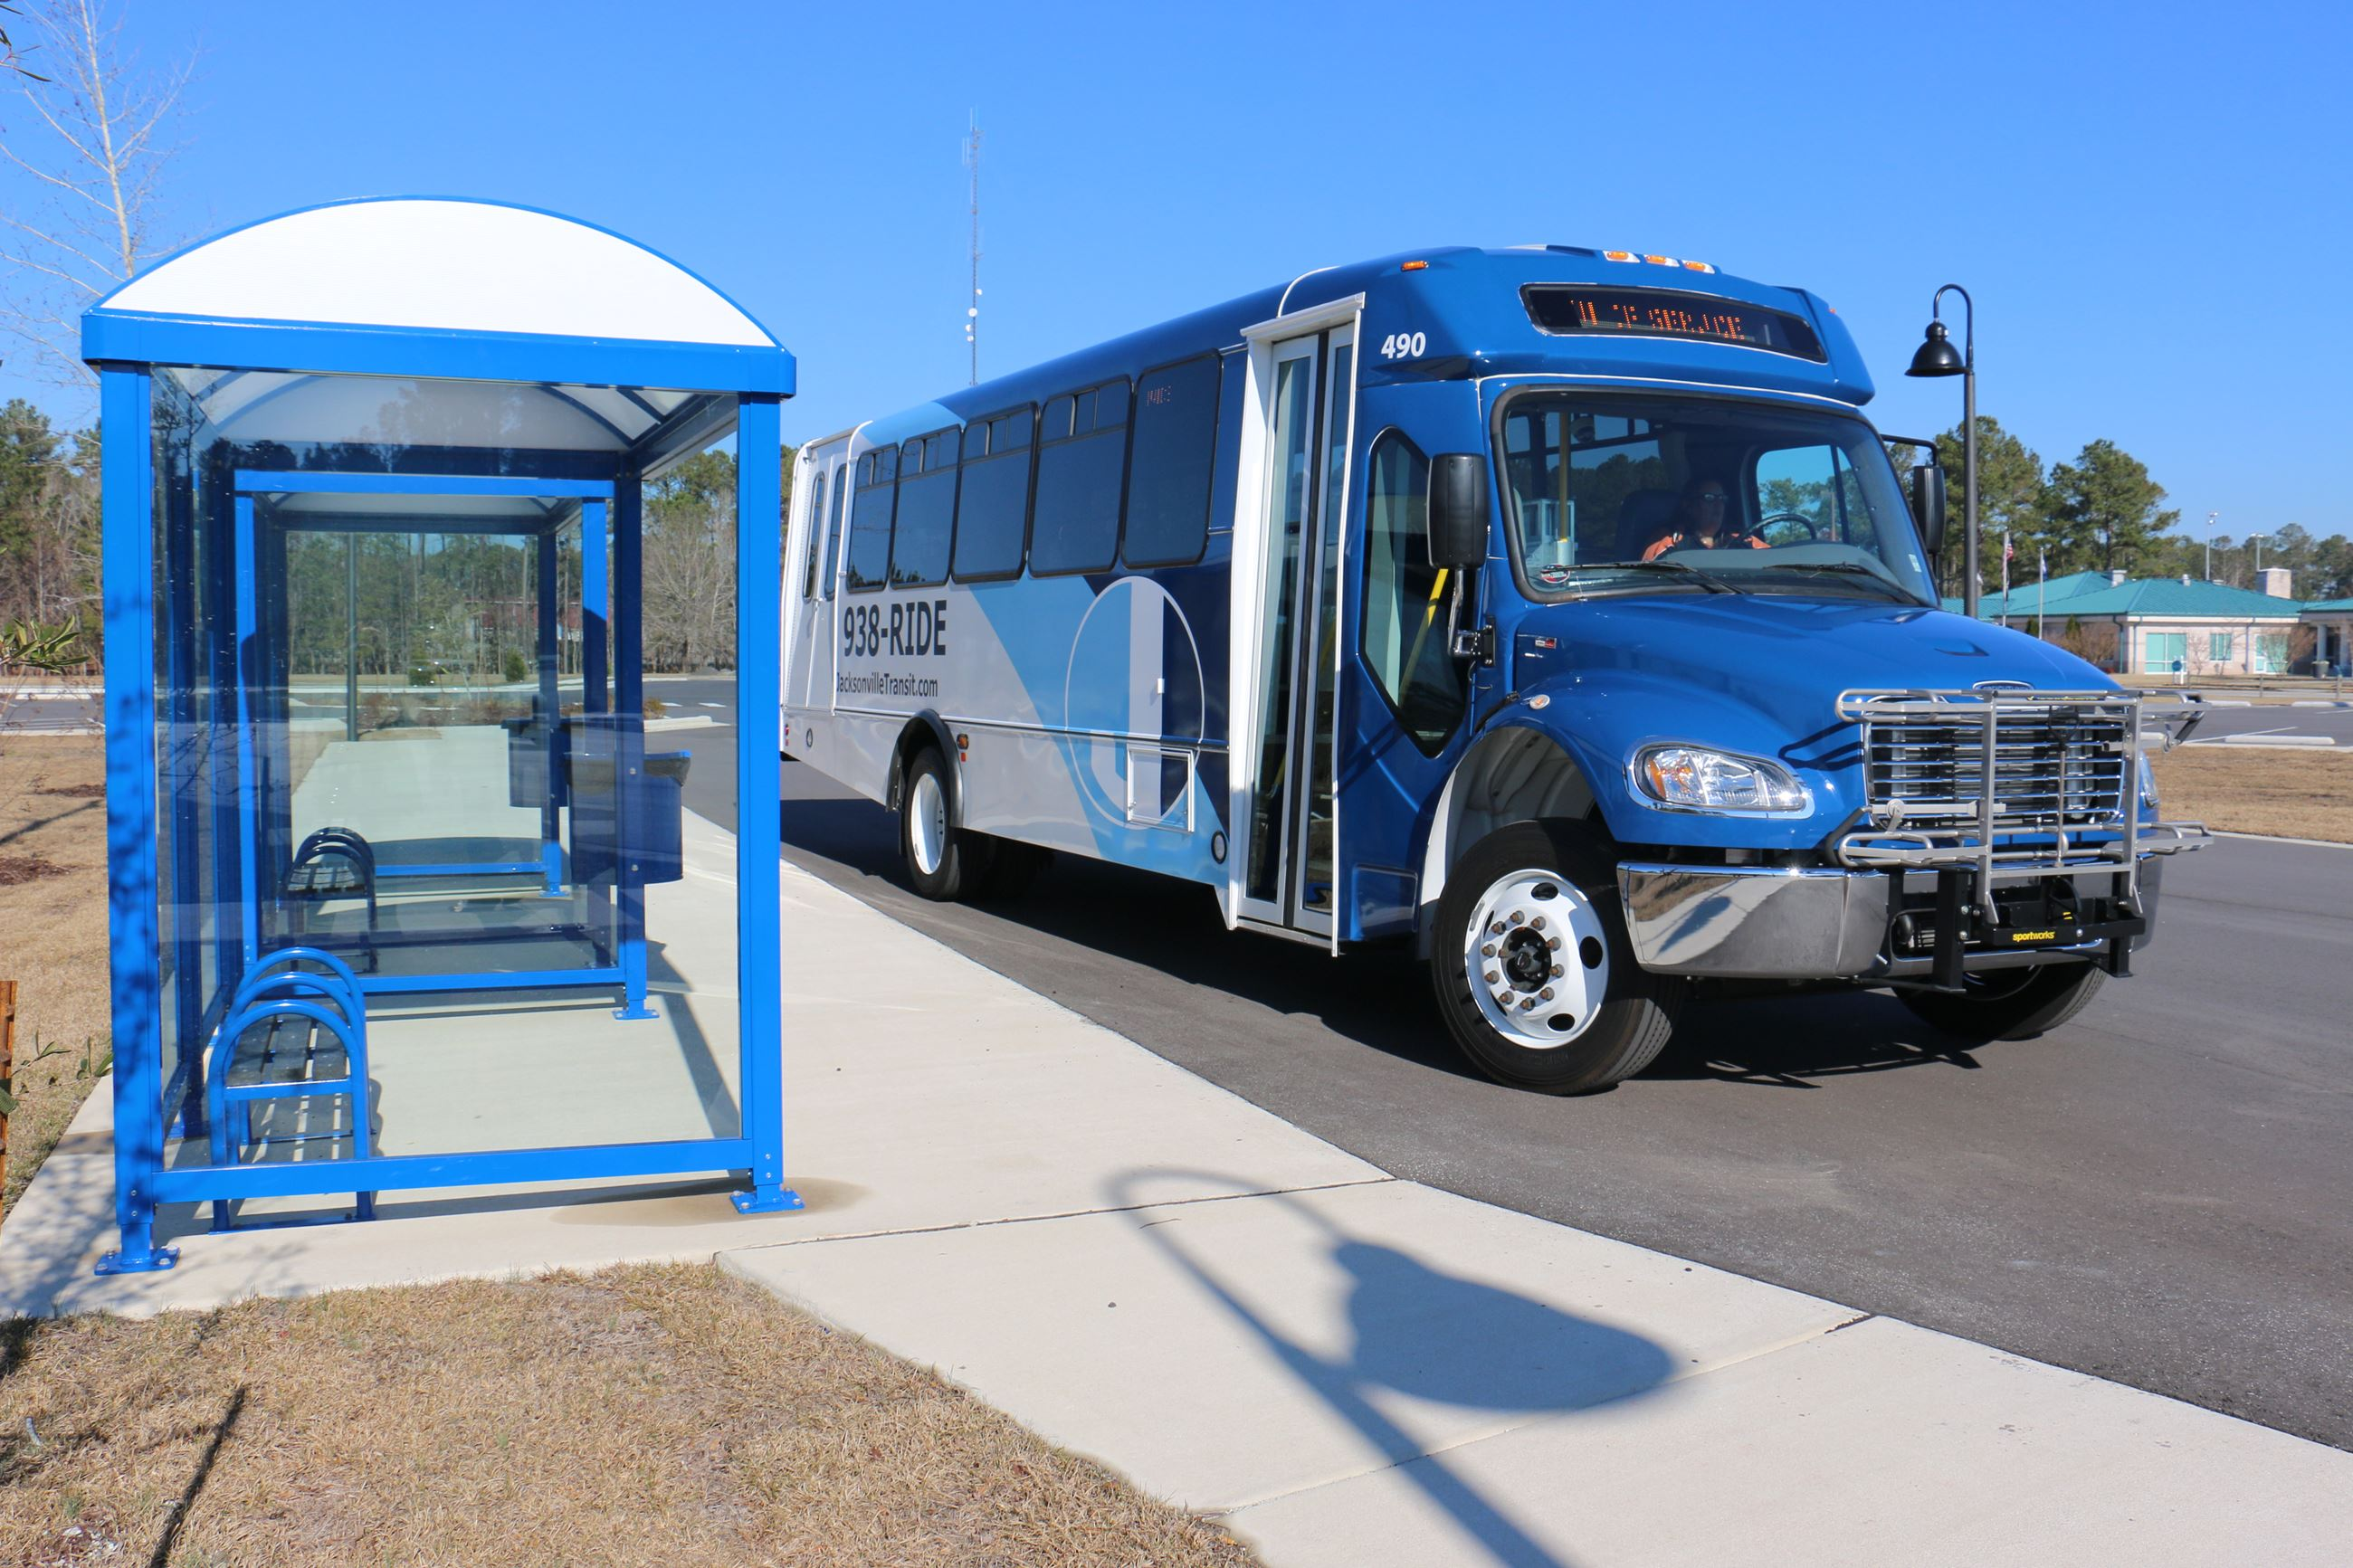 New Transit Bus Opens in new window